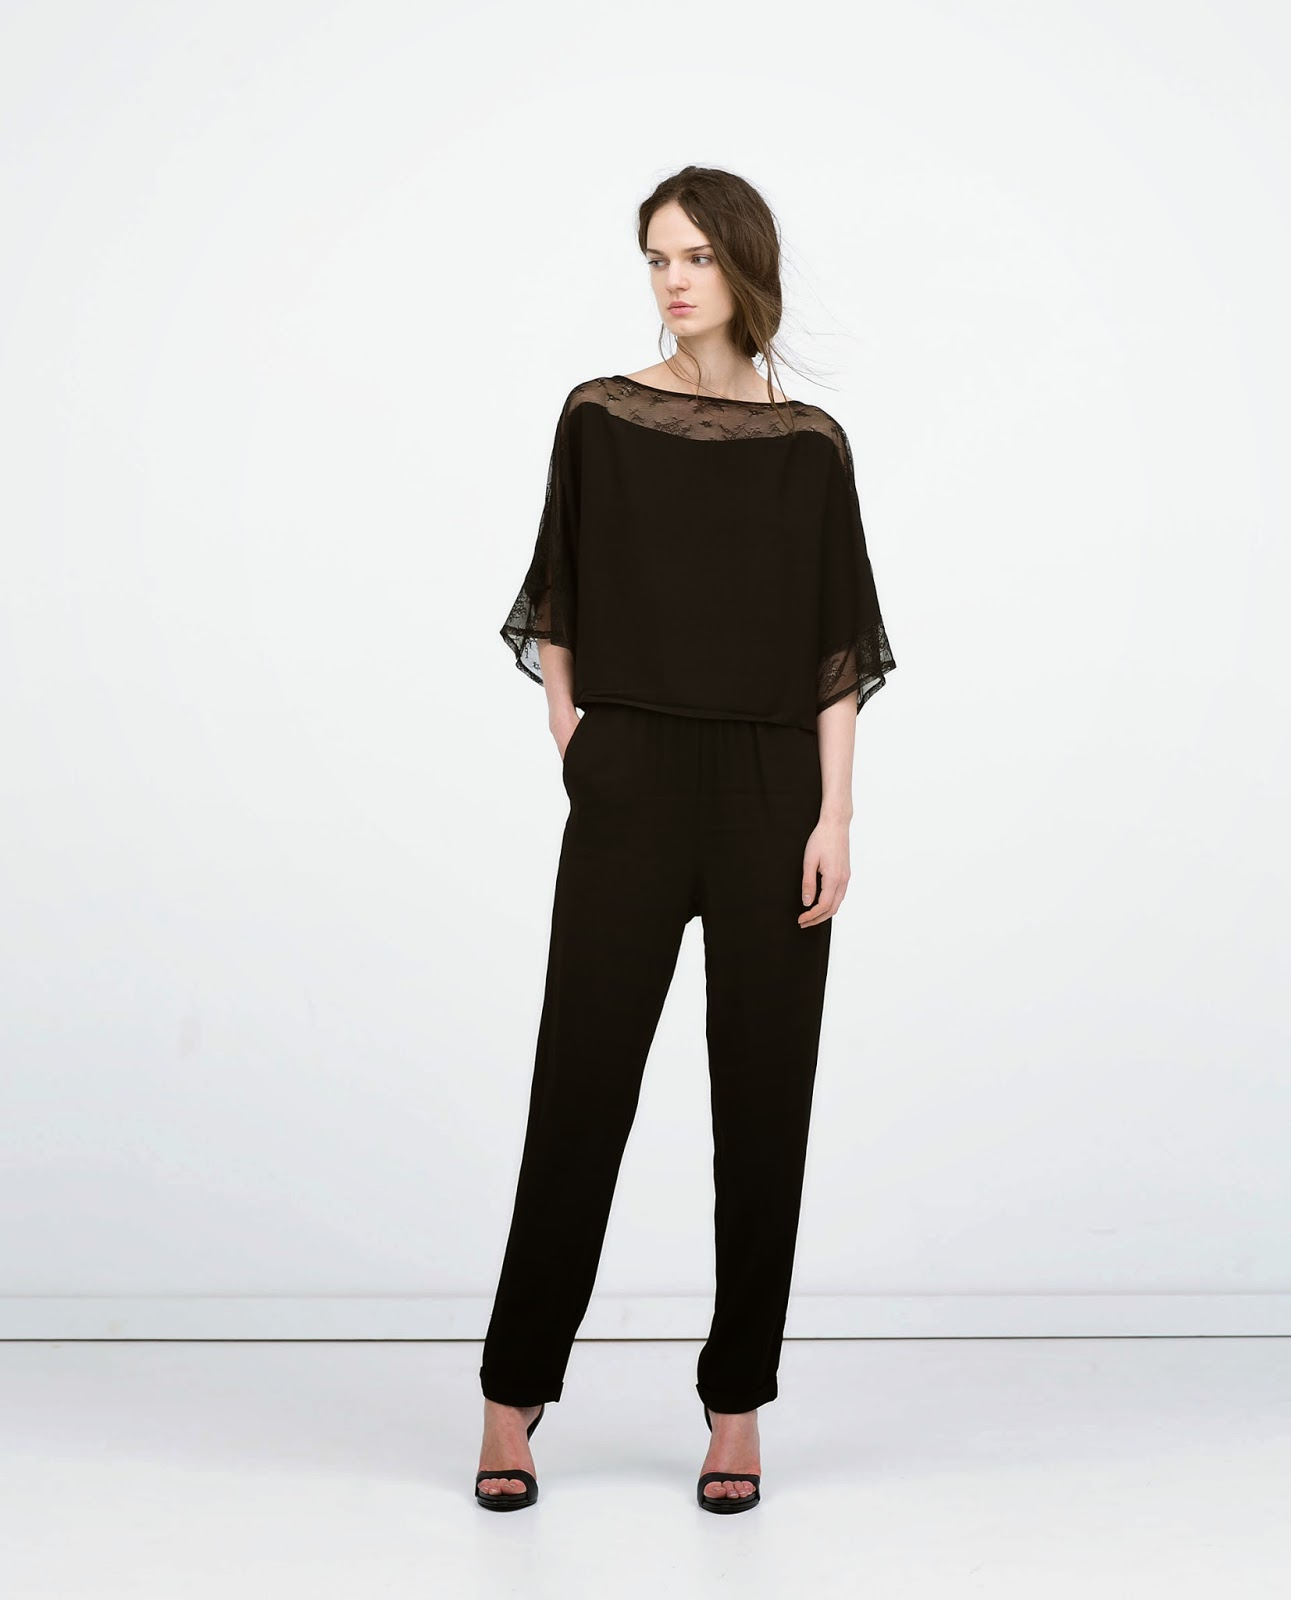 zara black jumpsuit,